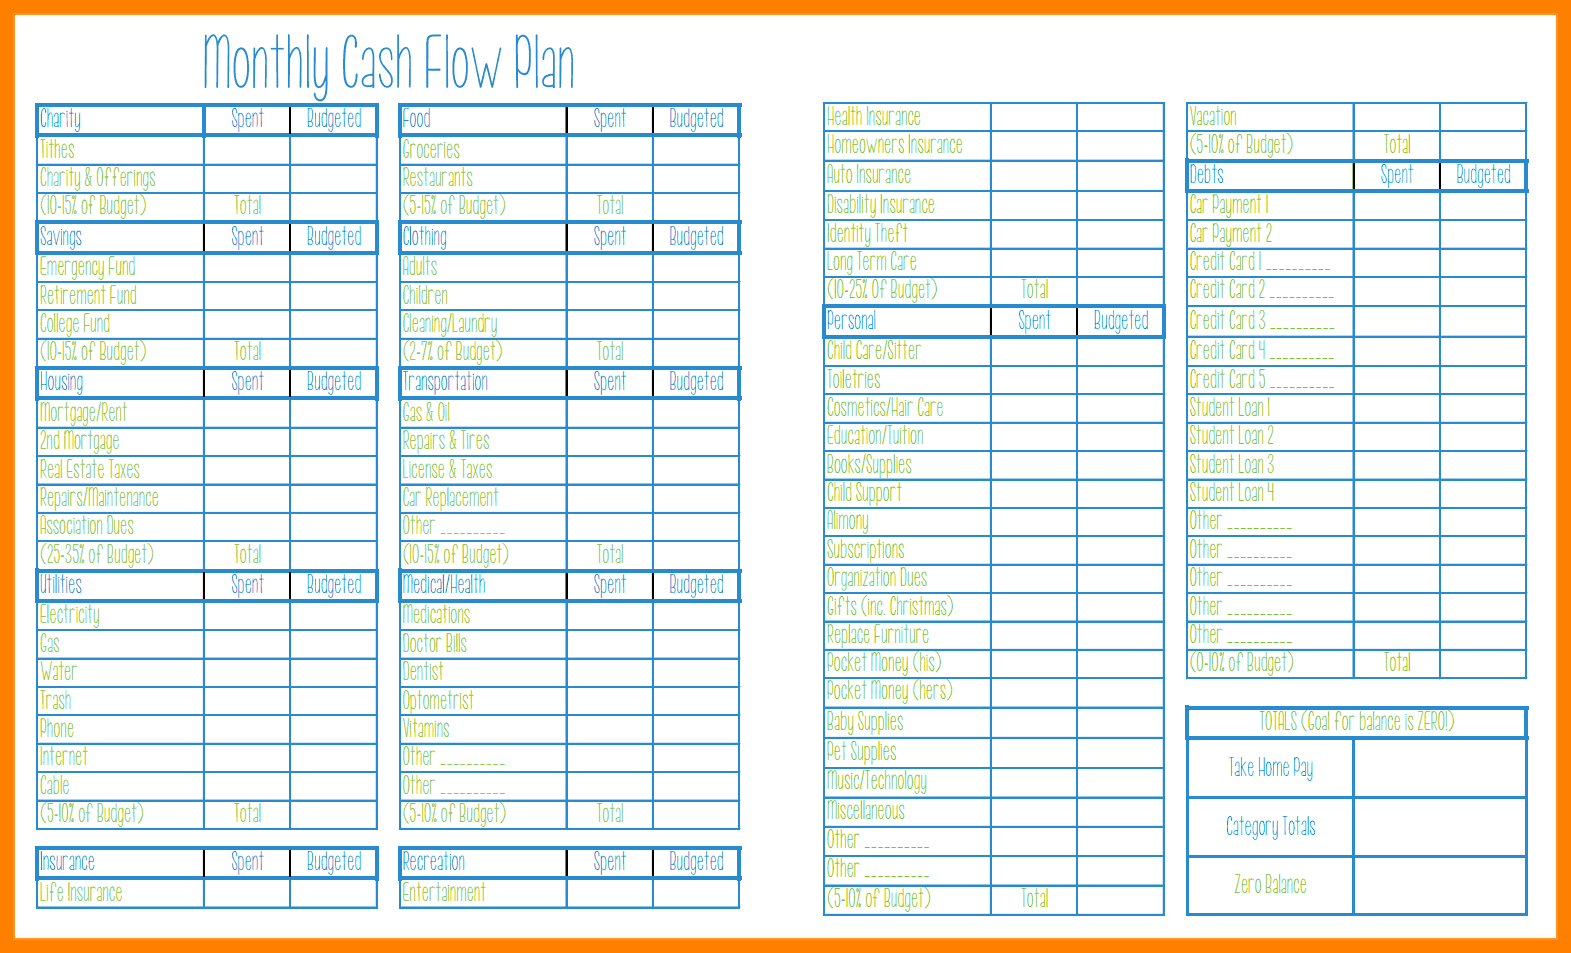 Dave Ramsey Budget Spreadsheet Excel In Dave Ramsey Spreadsheets 2018 Wedding Budget Spreadsheet Inventory